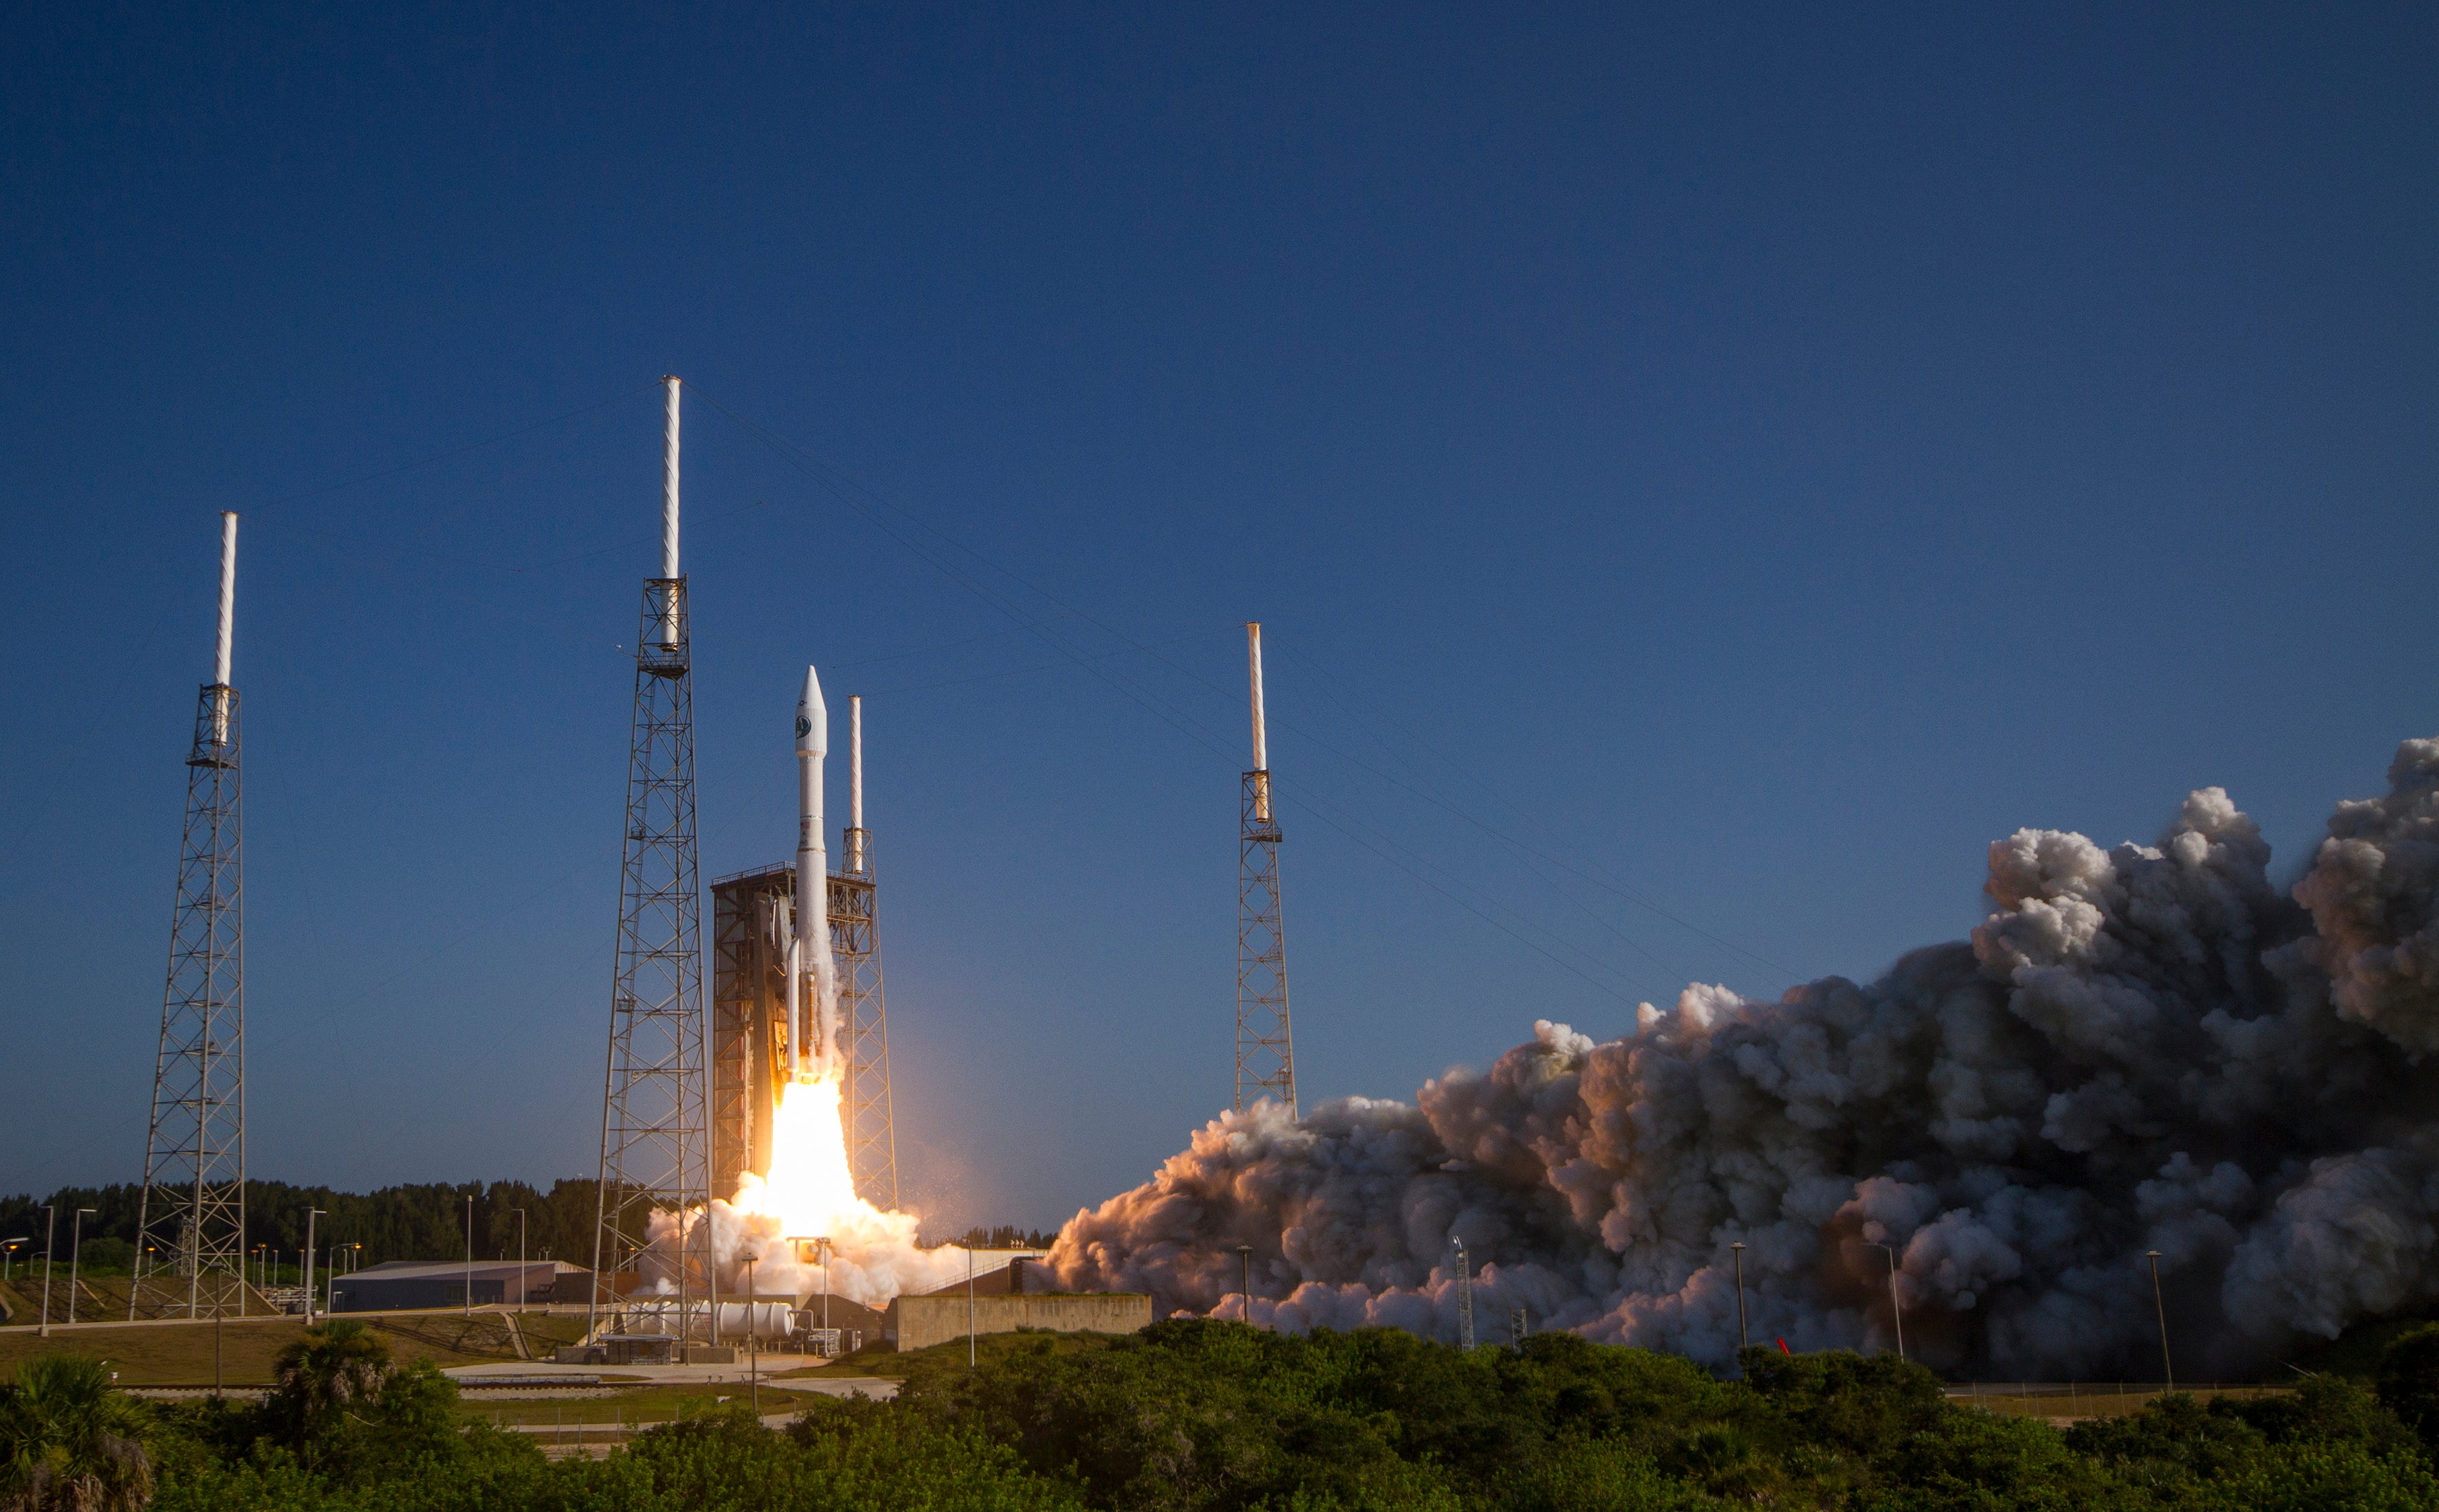 atlas-v rocket rocket-launch rockets satellites space spies spy top-secret